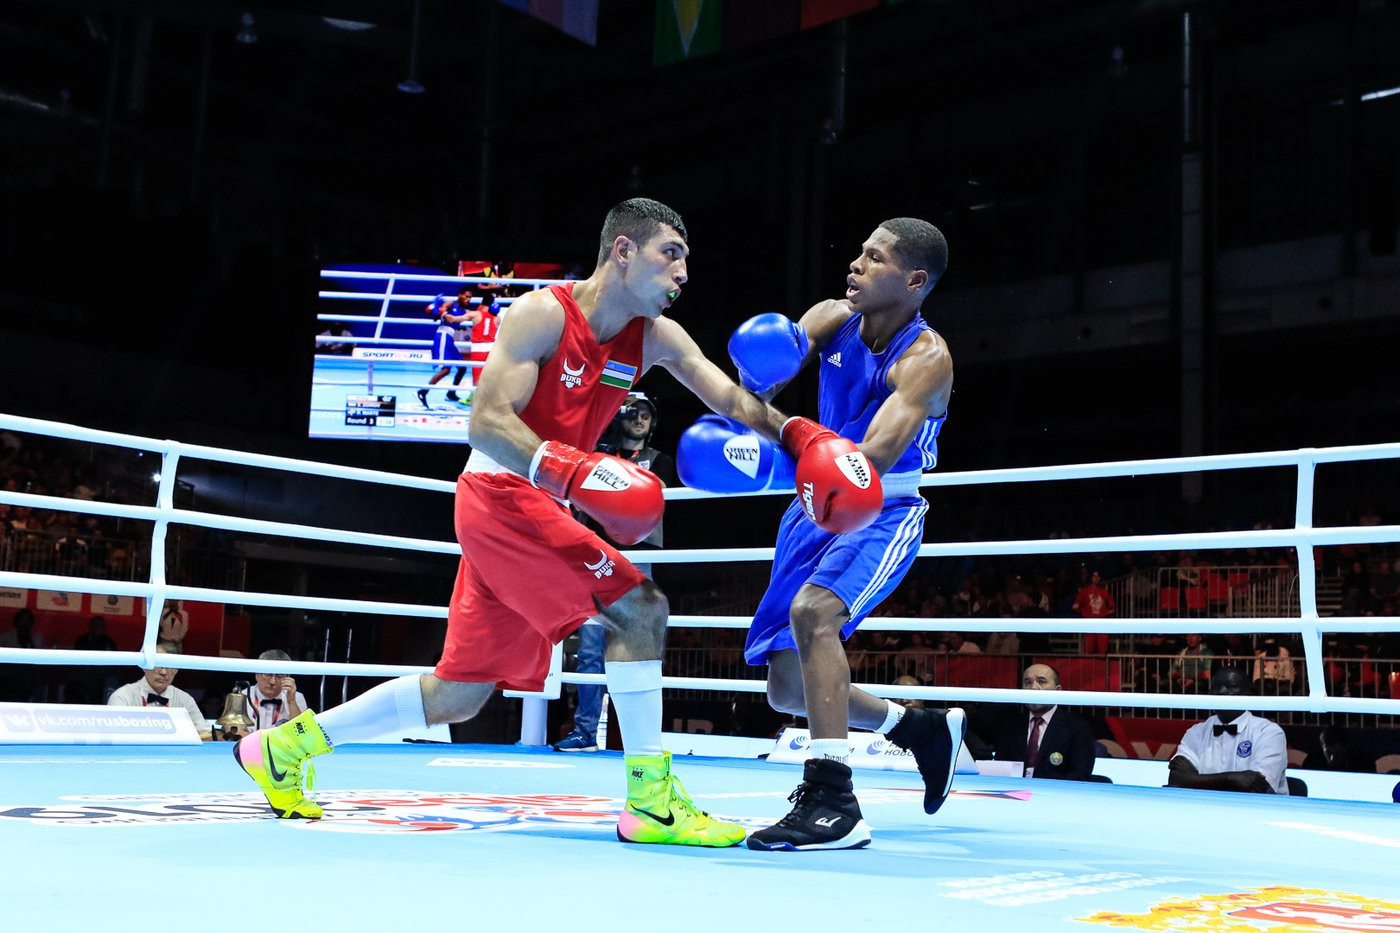 Olympic champion Shakhobidin Zoirov of Uzbekistan then knocked Rodrigo Marte of Dominican Republic out of the competition, securing a unanimous victory to do so ©Yekaterinburg 2019